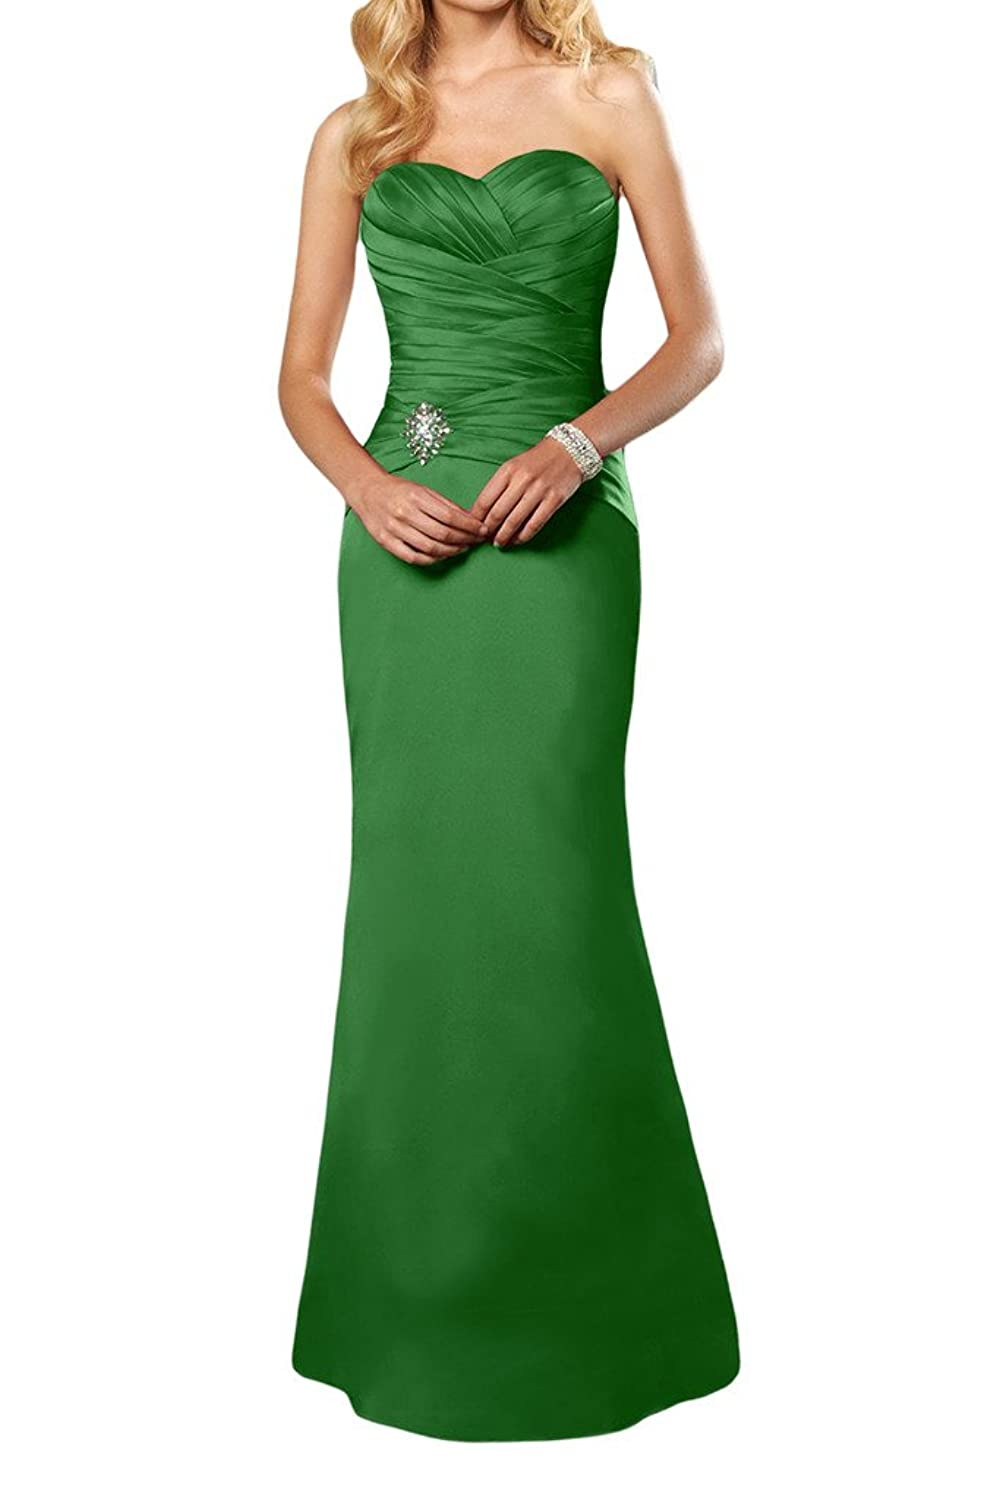 Gorgeous Bride Satin Simple Sweetheart Long Evening Party Dress Formal Gown